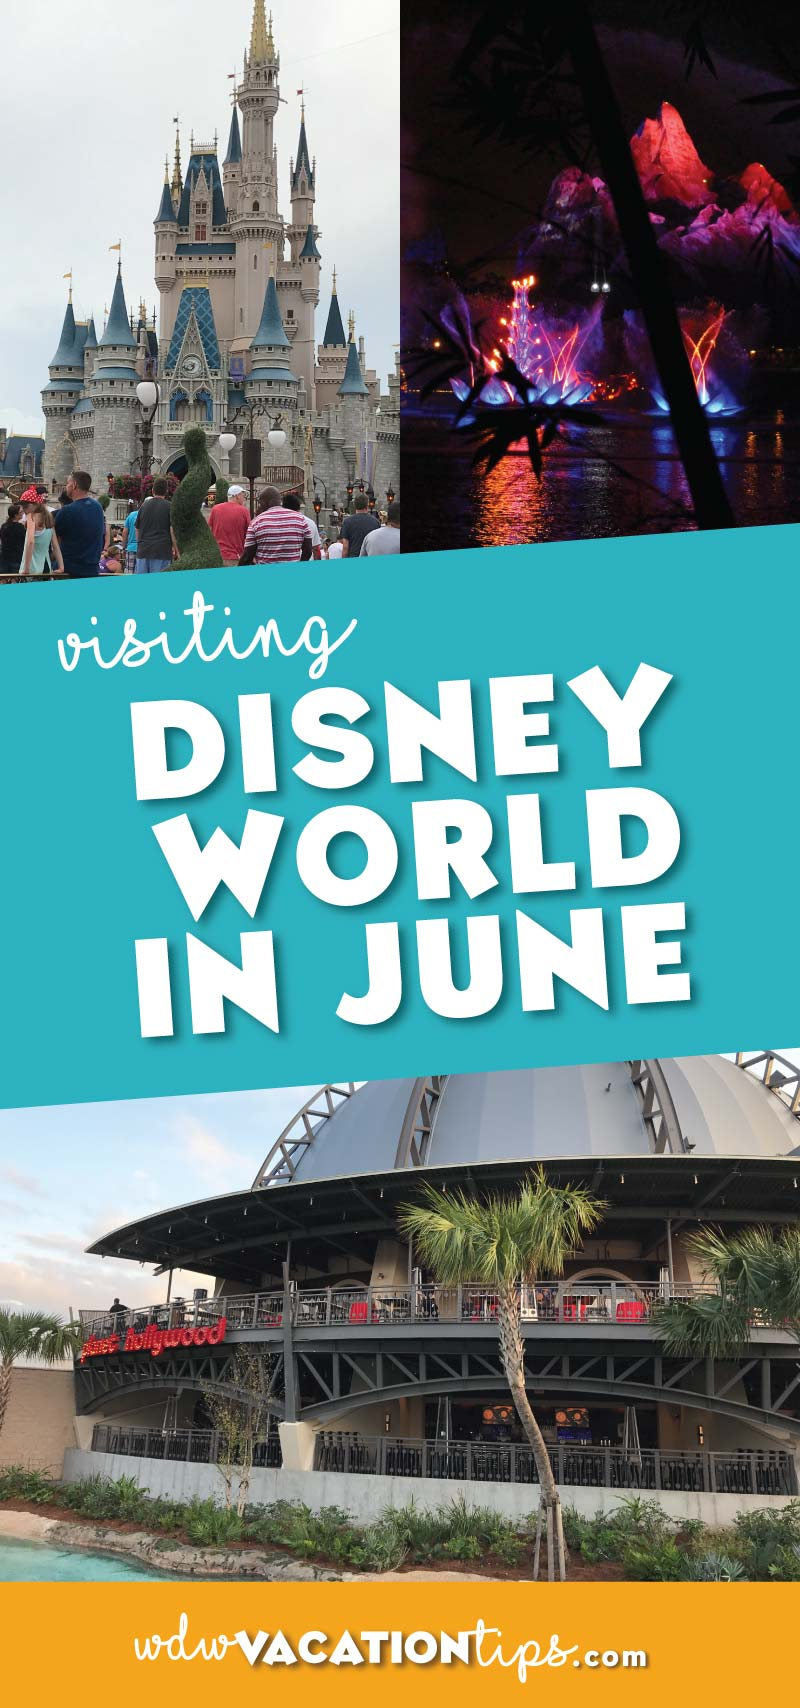 Tip and tricks for visiting Disney World in June. This is the official kickoff to the summer